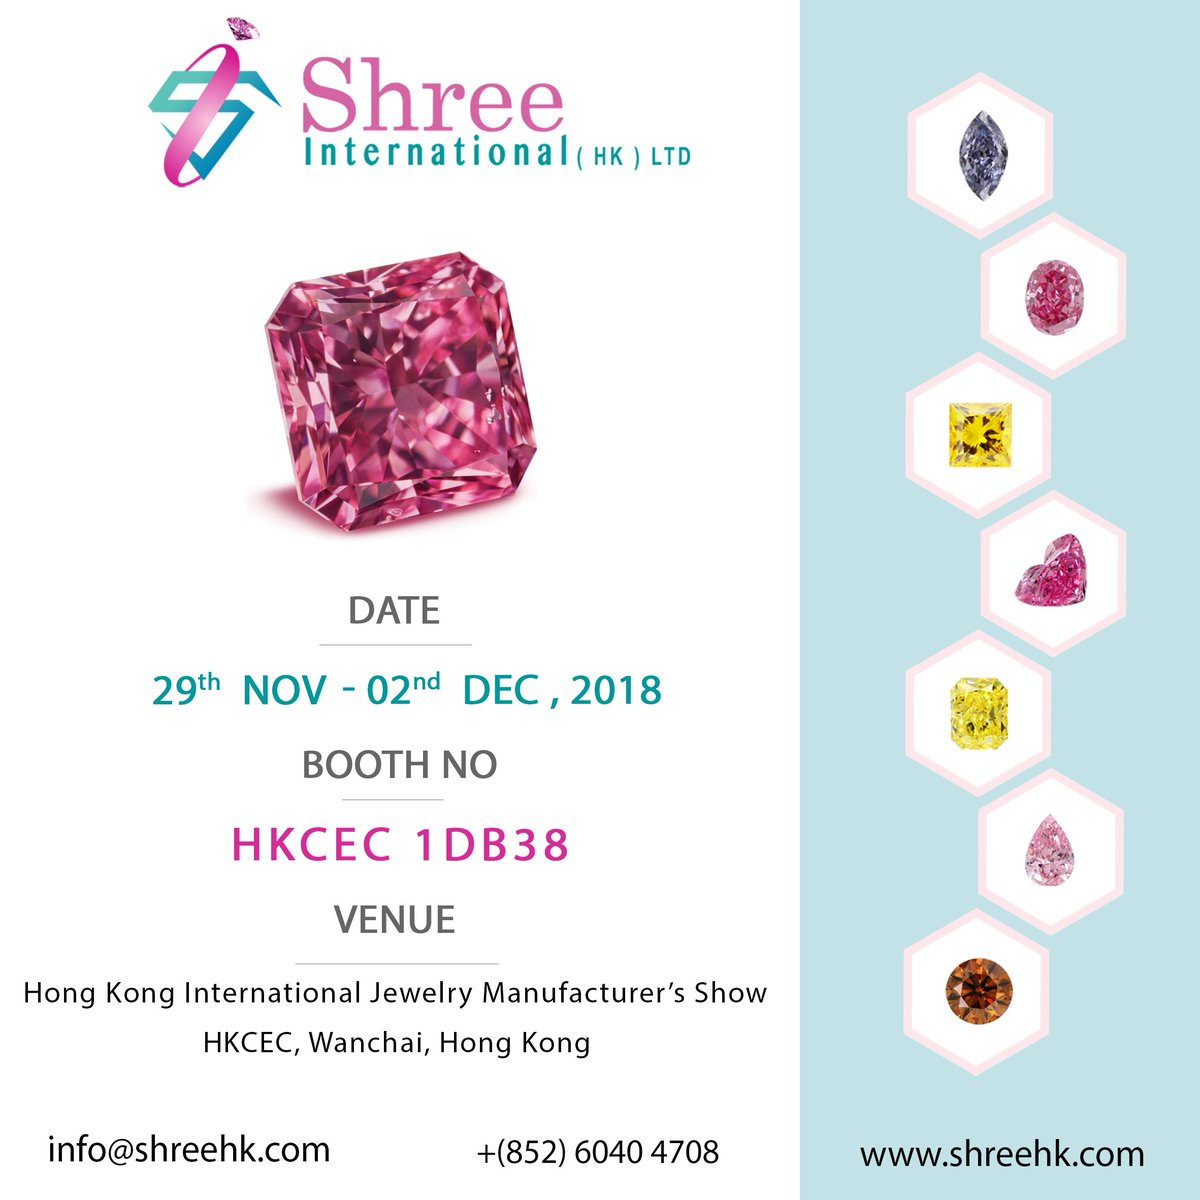 ... our Booth HKCEC #1DB38 at Hong Kong International Jewelry Manufacturer's Show Nov-Dec 2018, HKCEC, Wanchai, Hong Kong #hongkong #hk #hkcec #hongkongshow ...